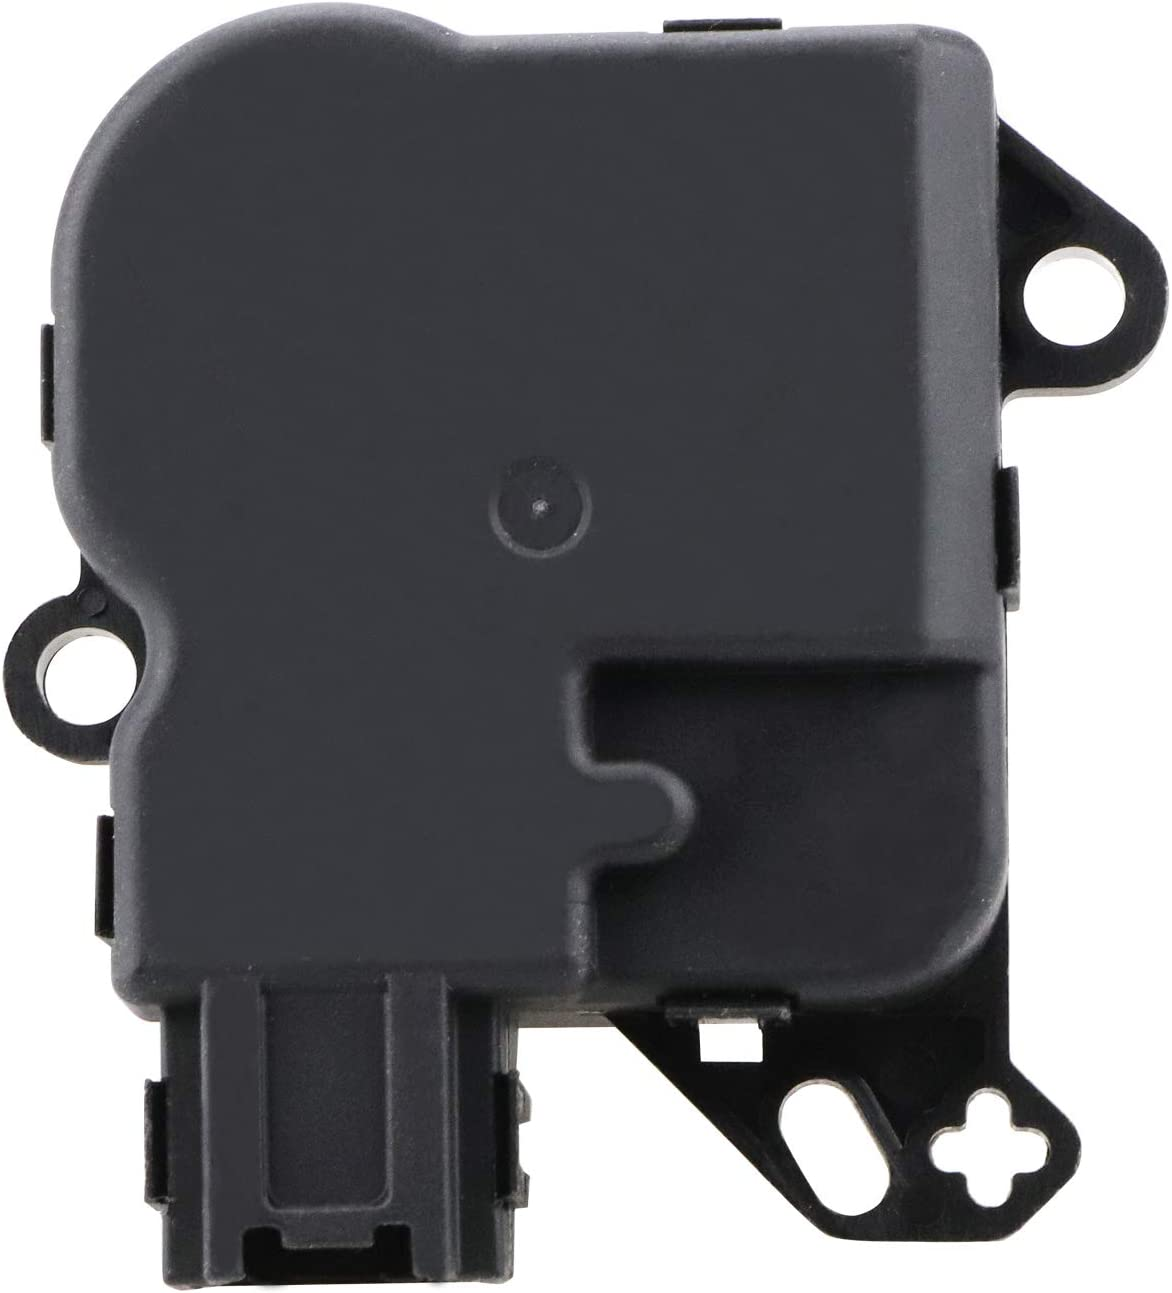 YH1933, 604-252, DL3Z-19E616-A Heater Blend Door Actuator - Fits Ford F-150 2009 2010 2011 2012 2013 2014, Ford Expedition 2009-2016, Lincoln Navigator 2006-2016 - Air Door Motor